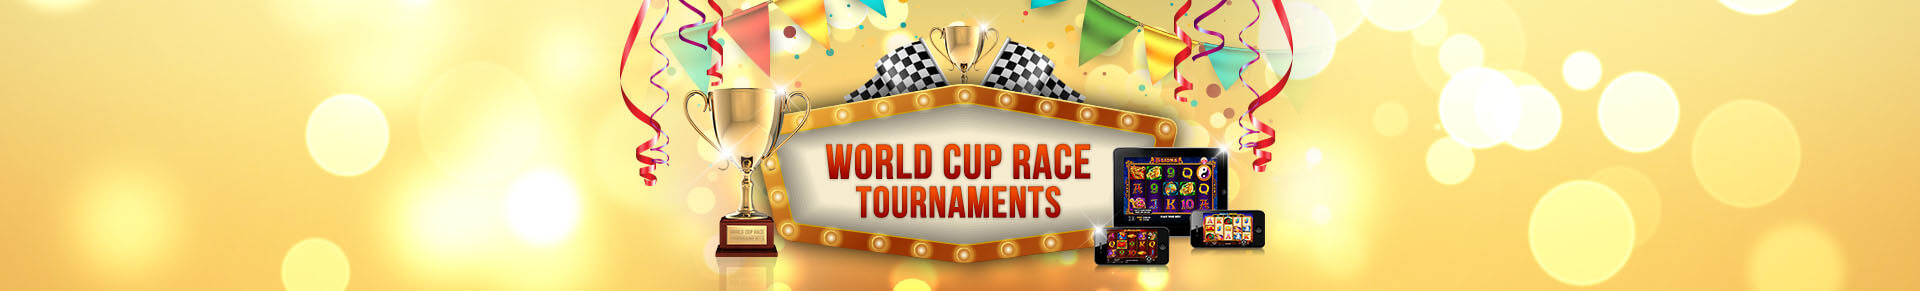 World Cup Race Tournaments